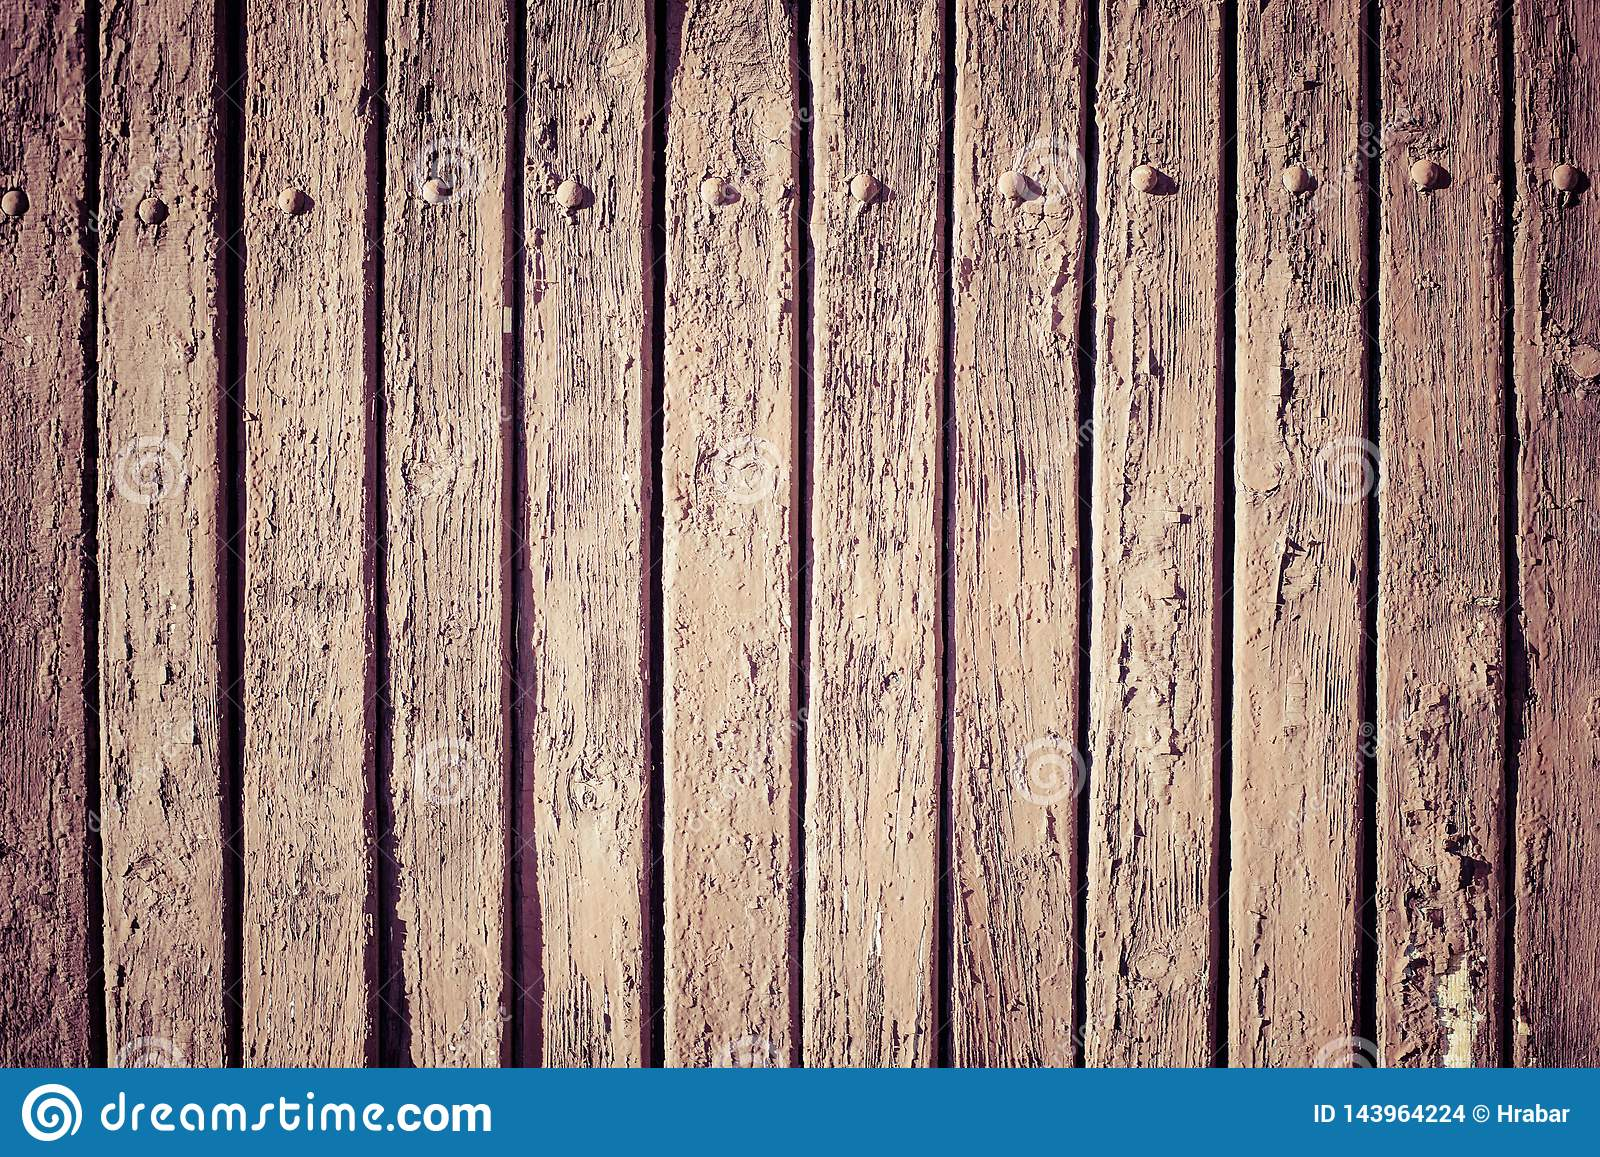 Vintage brown wooden wall plank background